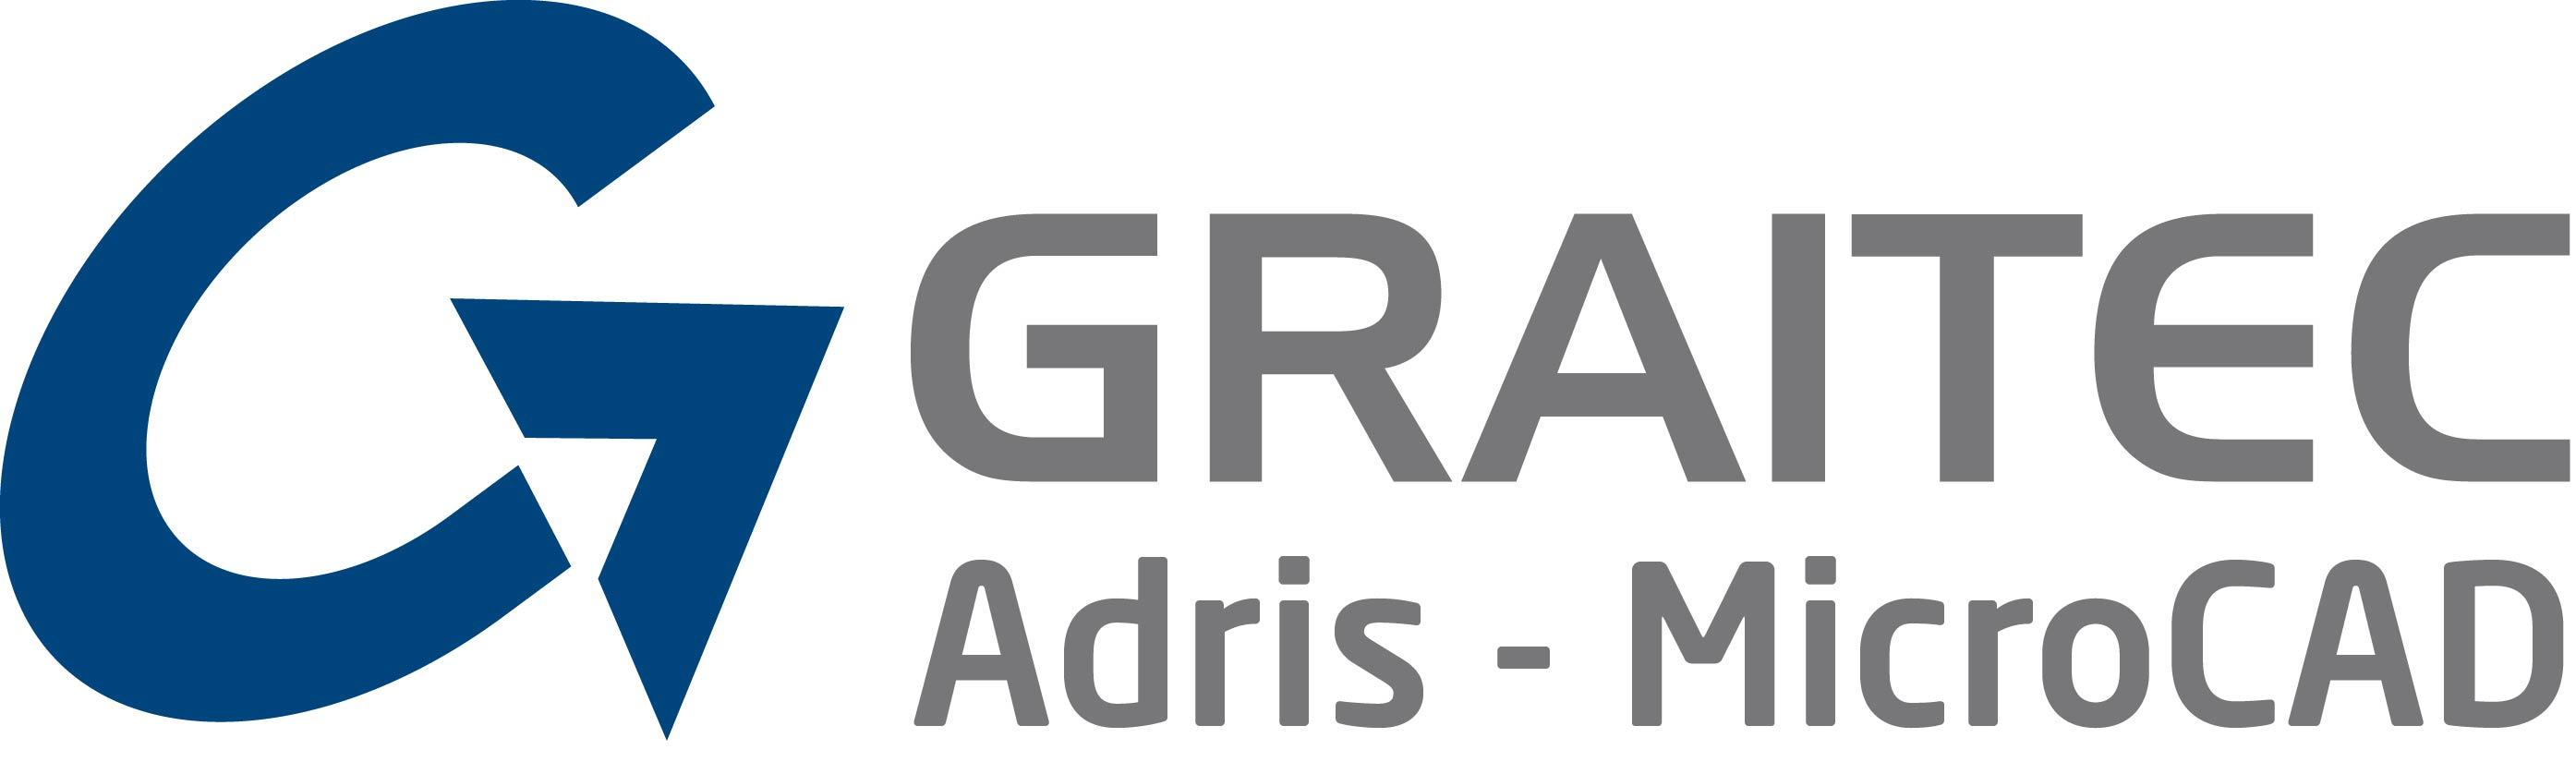 Graitec - Adris - MicroCAD - LOGO